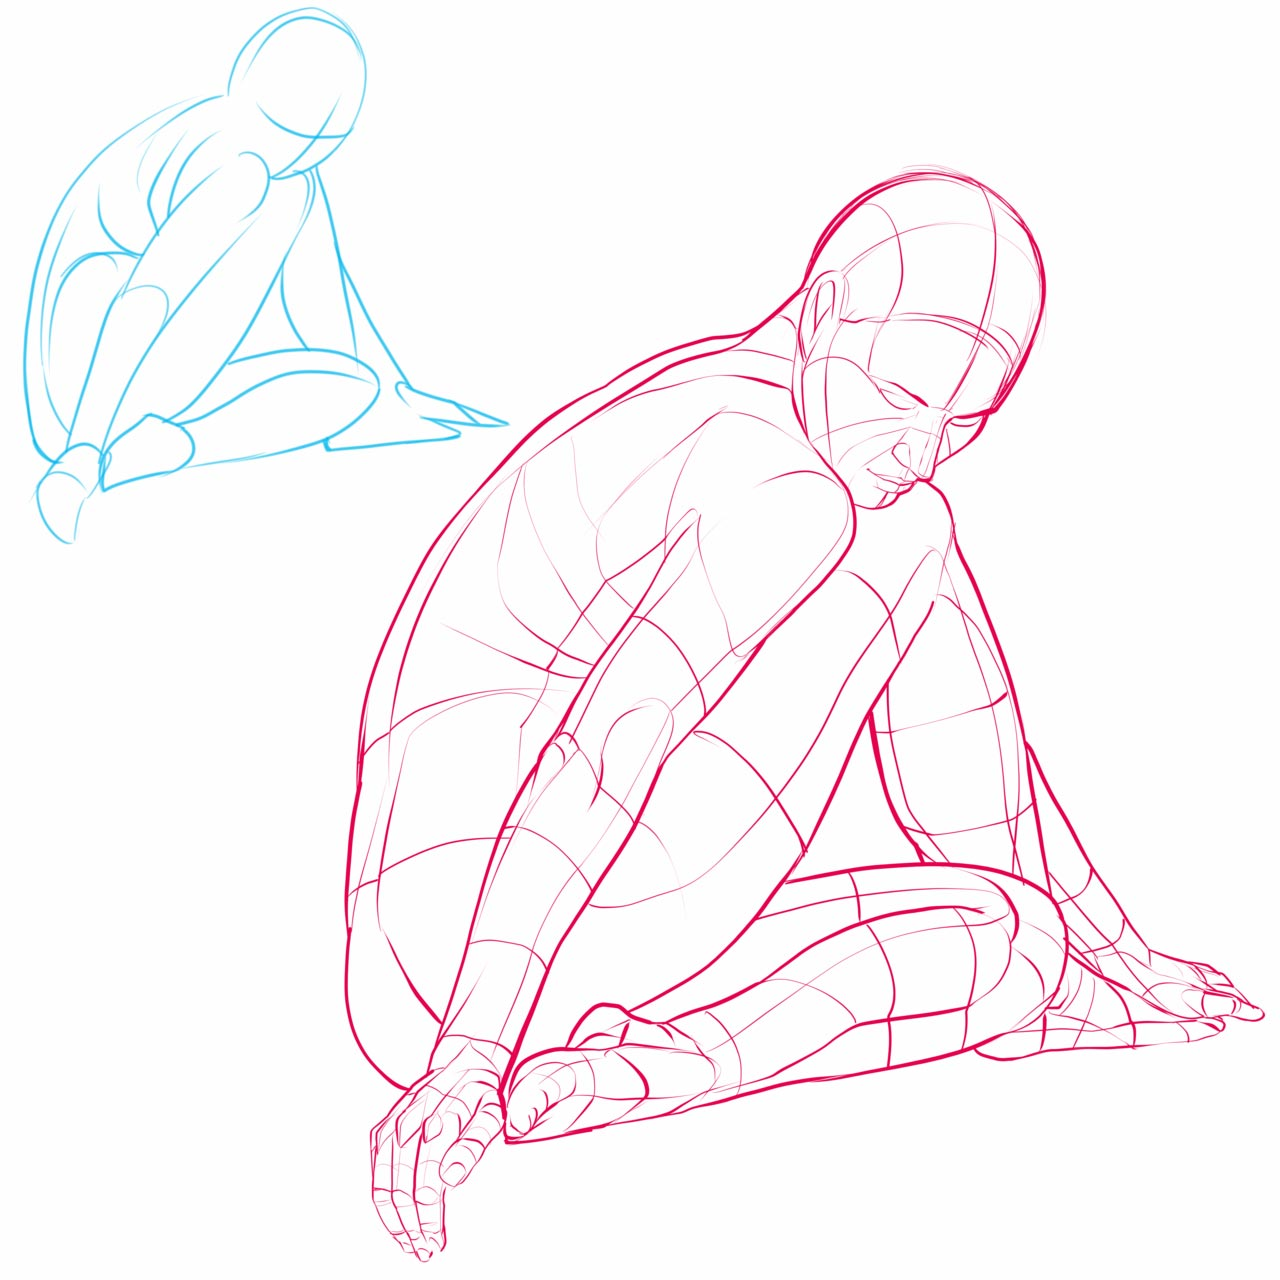 Kneeling drawing reference